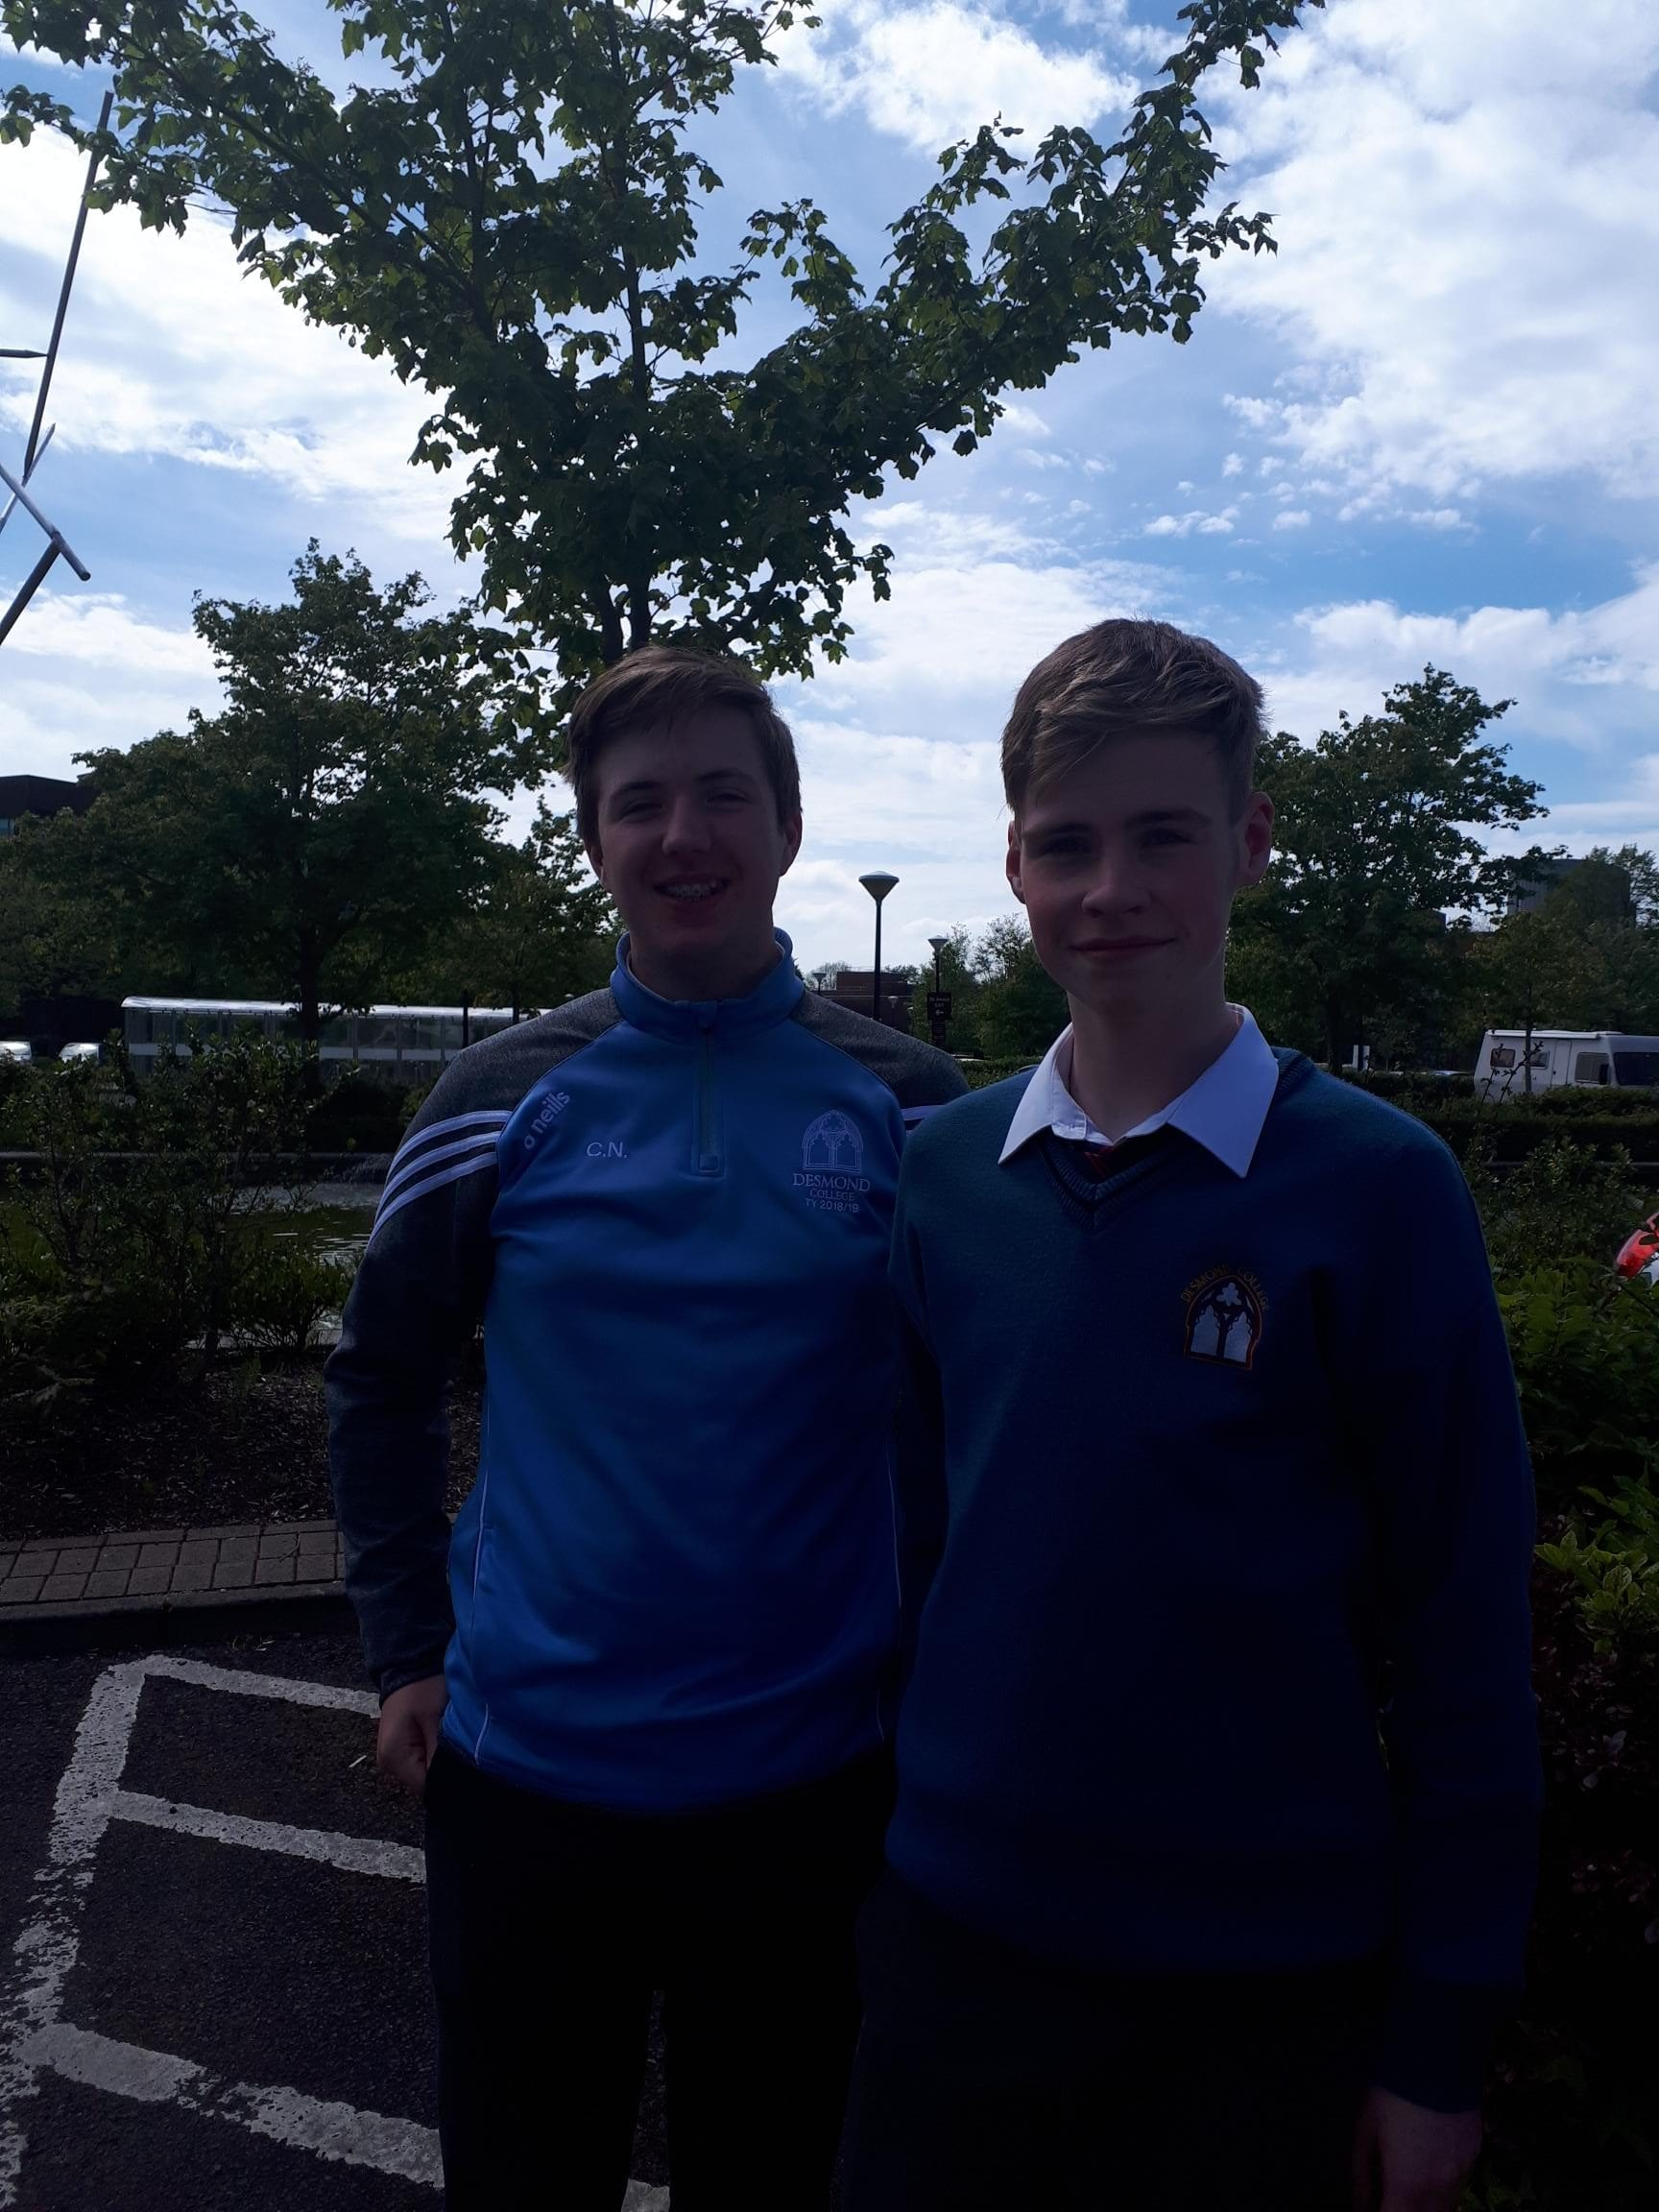 Cian Nolan and Matthew O'Connor who took part in the Teacher Taster Programme at the University of Limerick